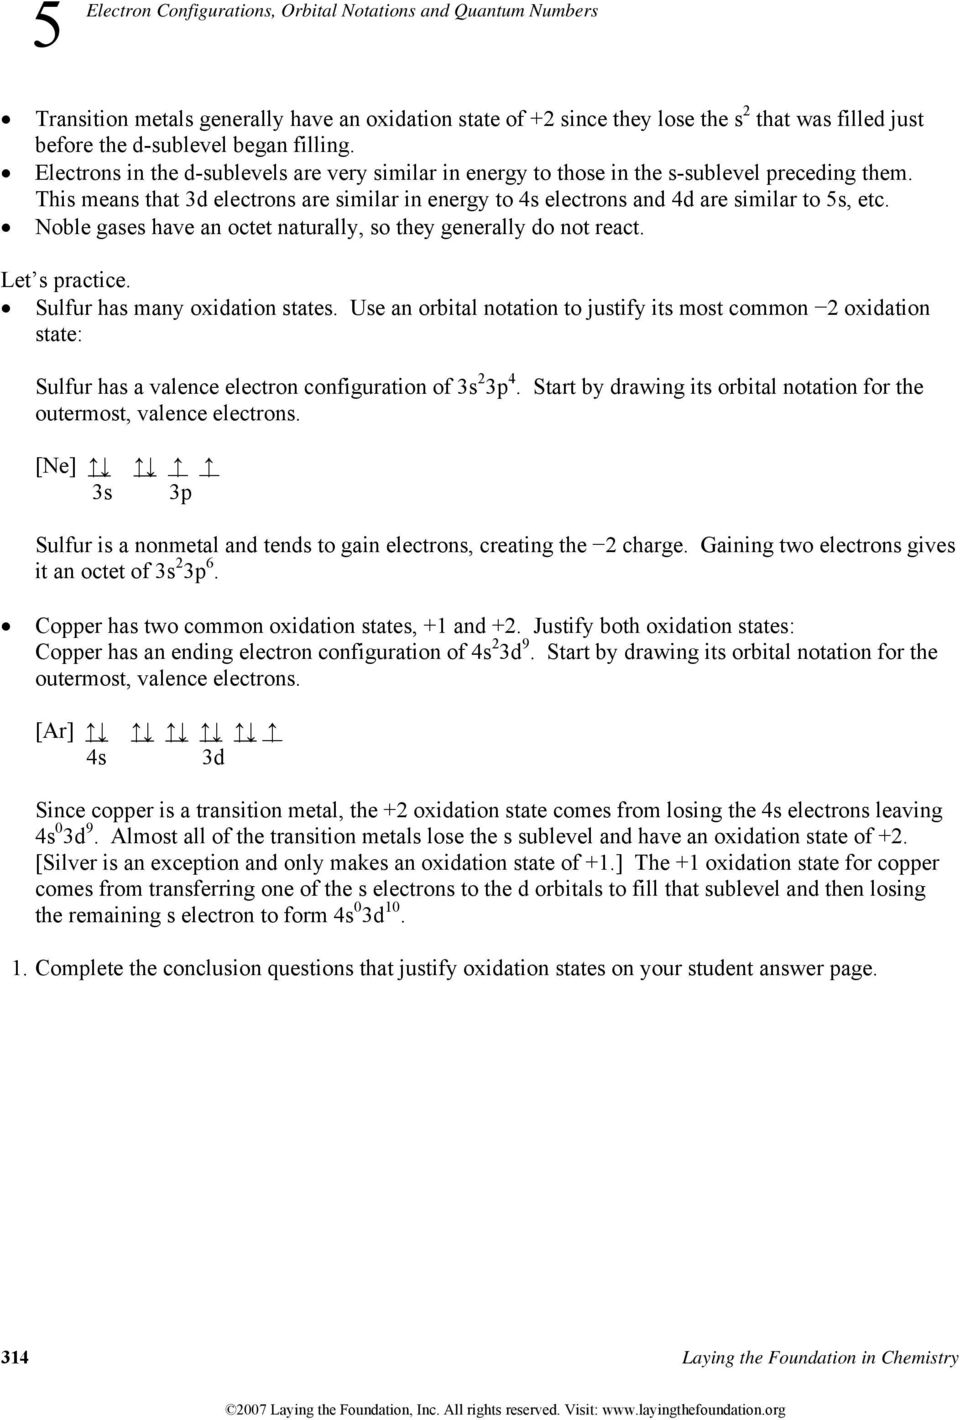 29 Electron Configuration And Orbital Diagram Worksheet